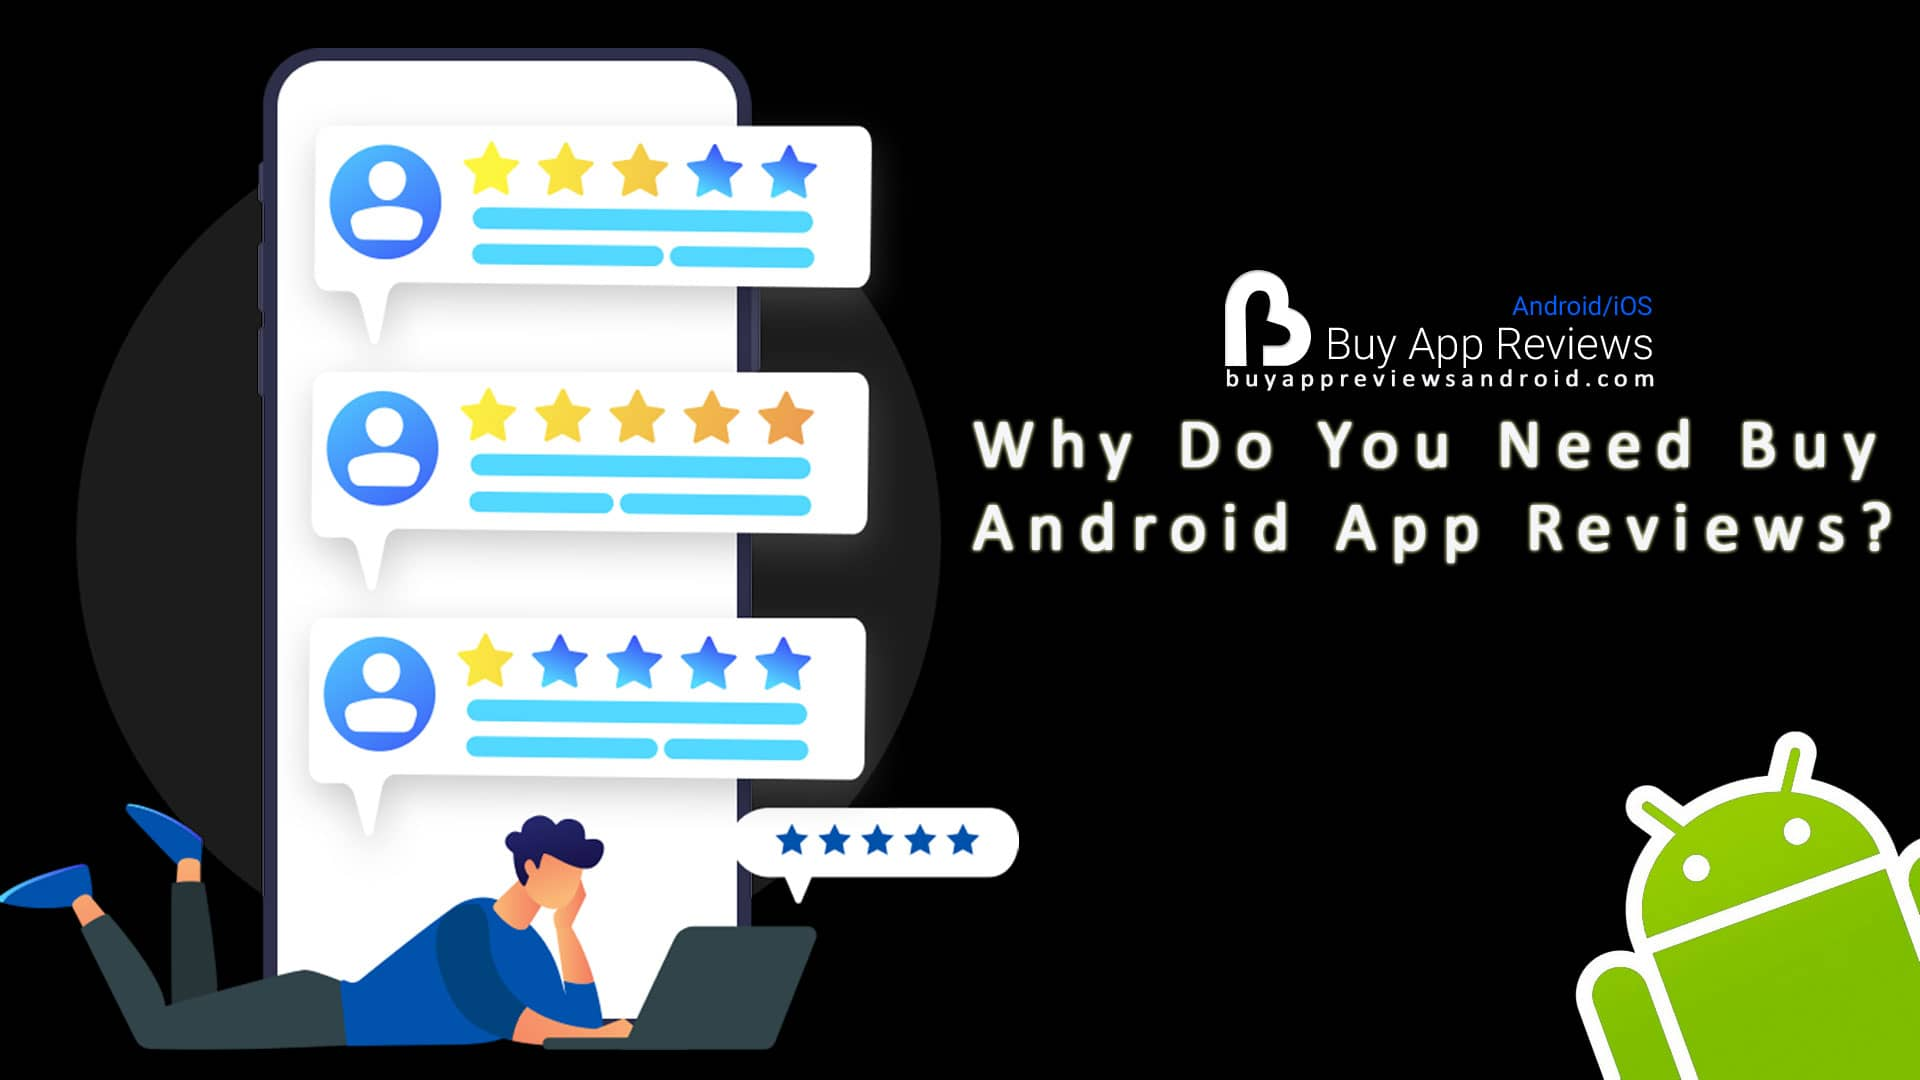 Why Do You Need Buy Android App Reviews